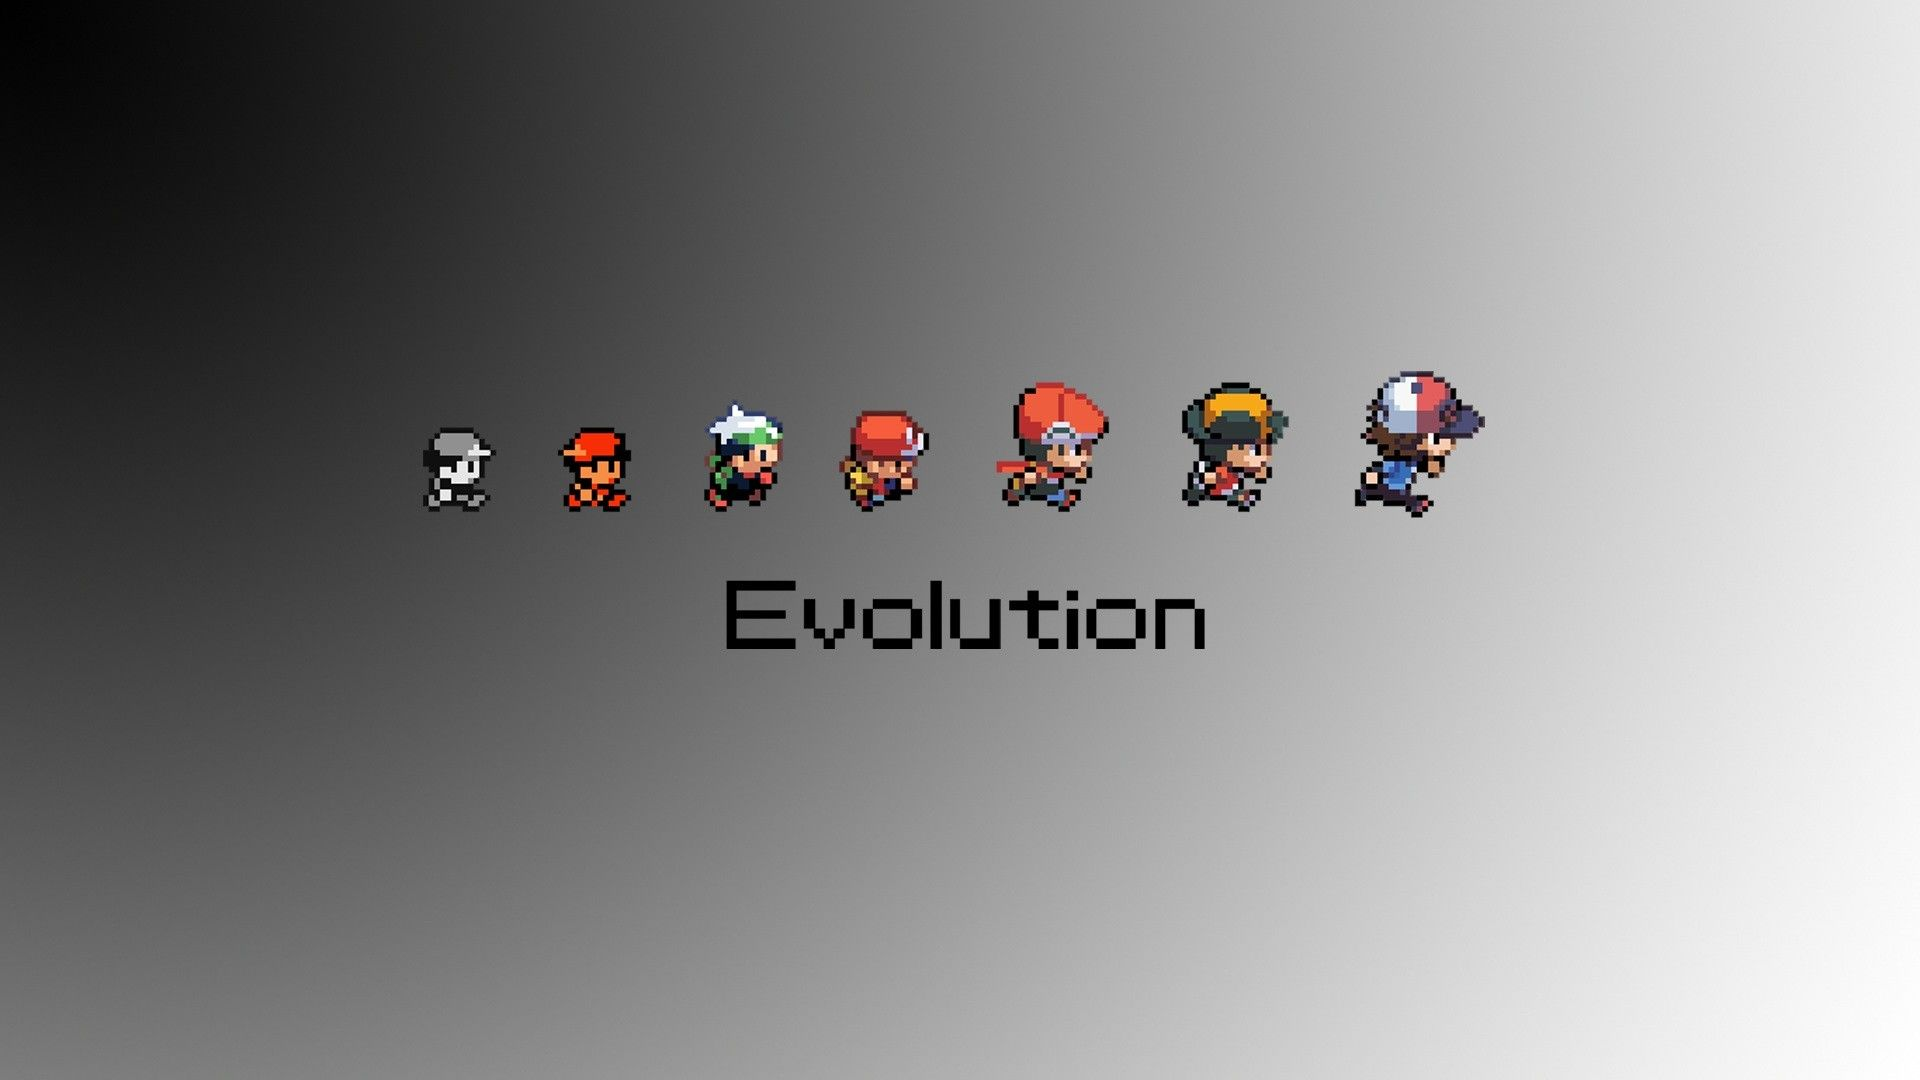 pokemon wallpaper hd 1920x1080